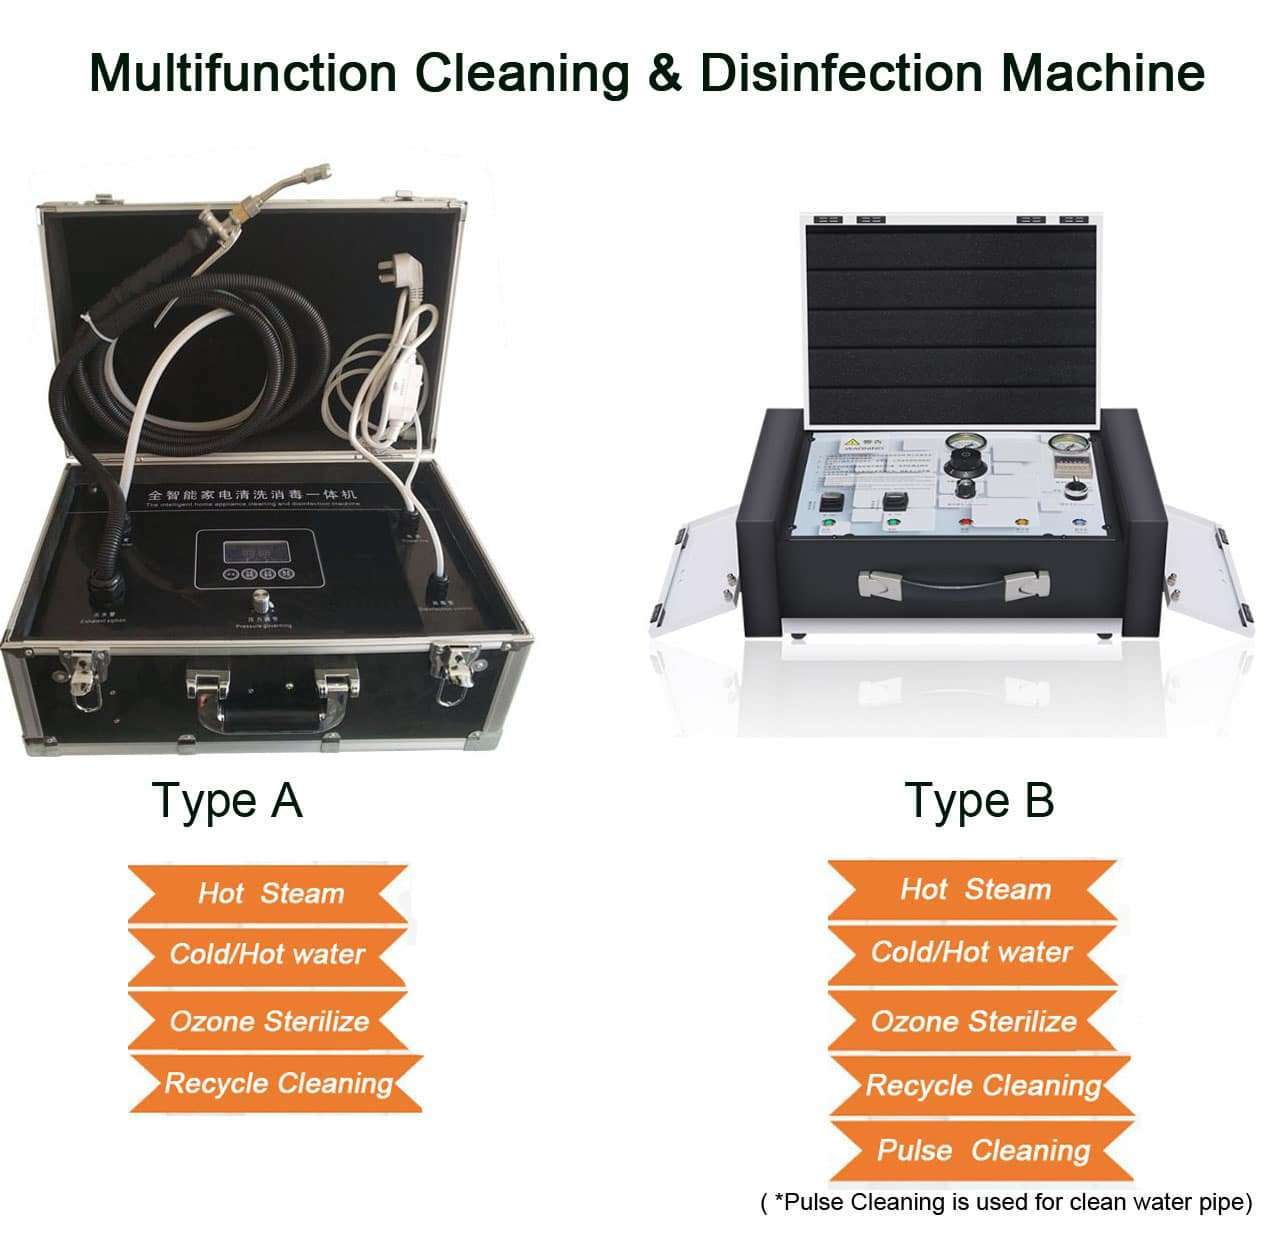 Multifunction-cleaning-Machine functions